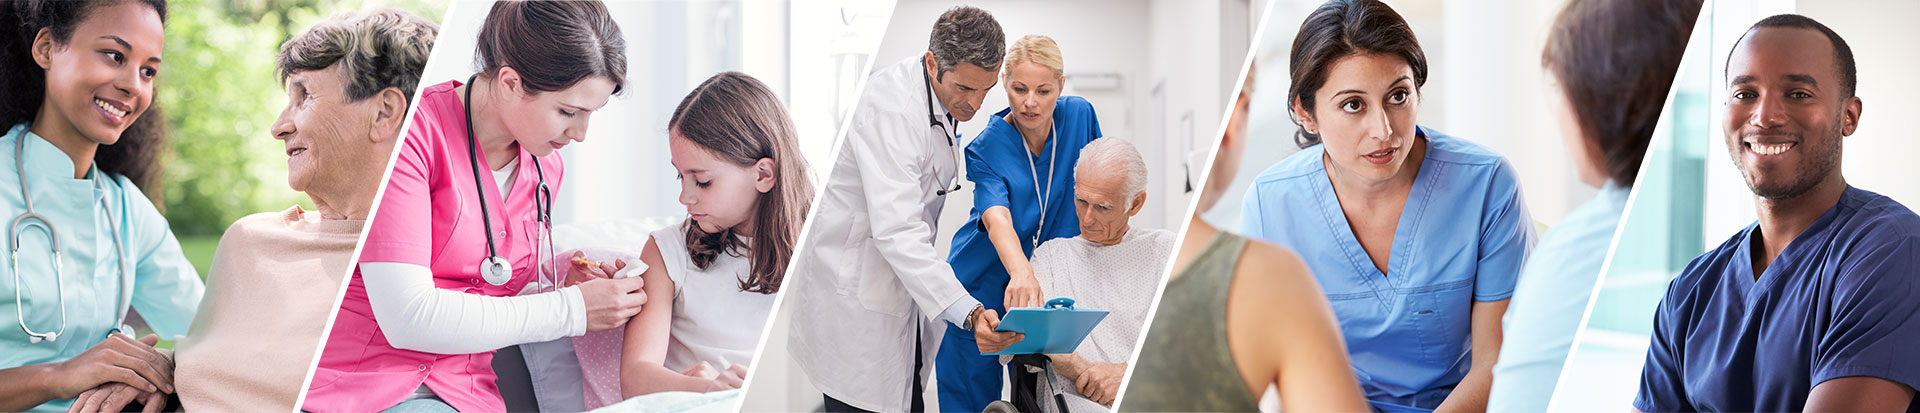 Nurse Connection Staffing has a variety of work settings